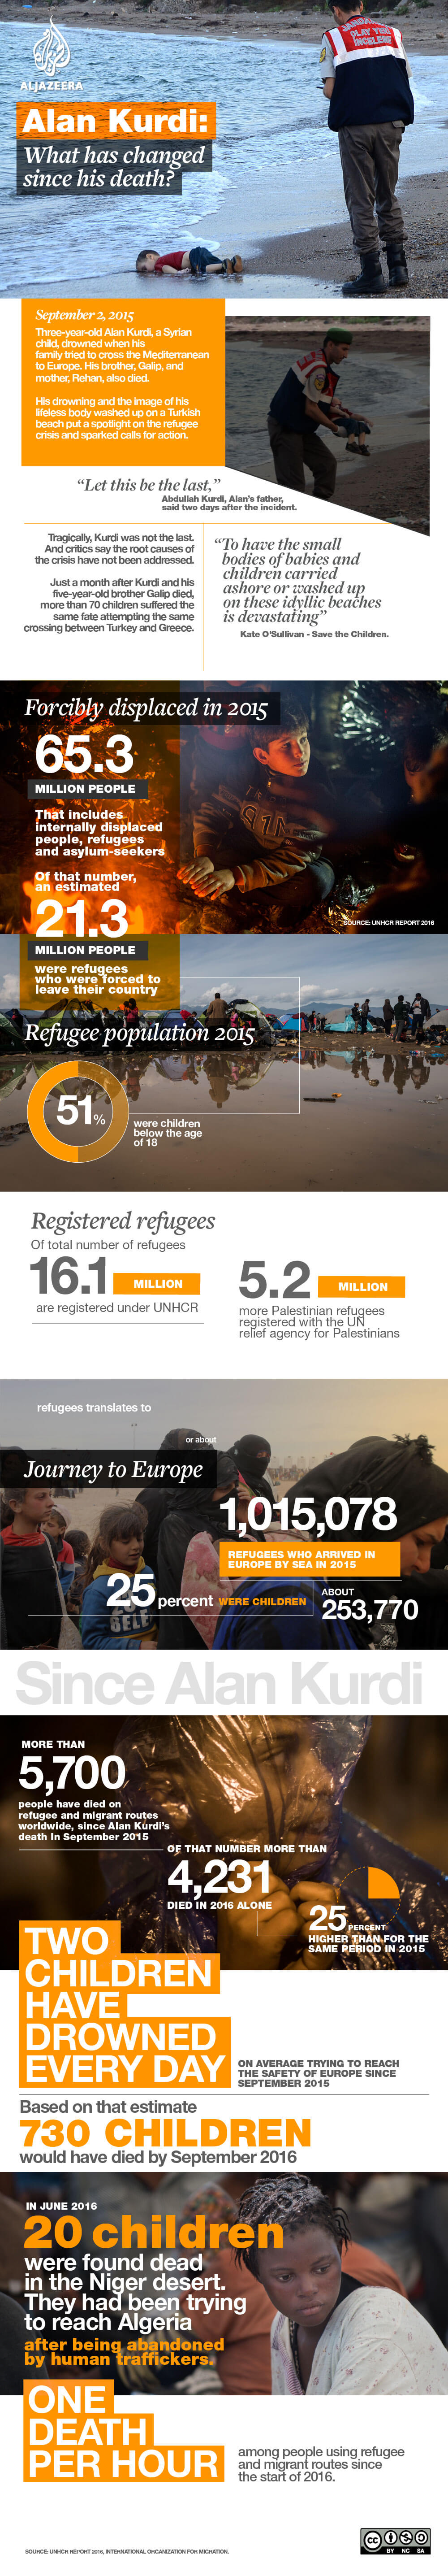 alan aylan kurdi infographic refugee turkey